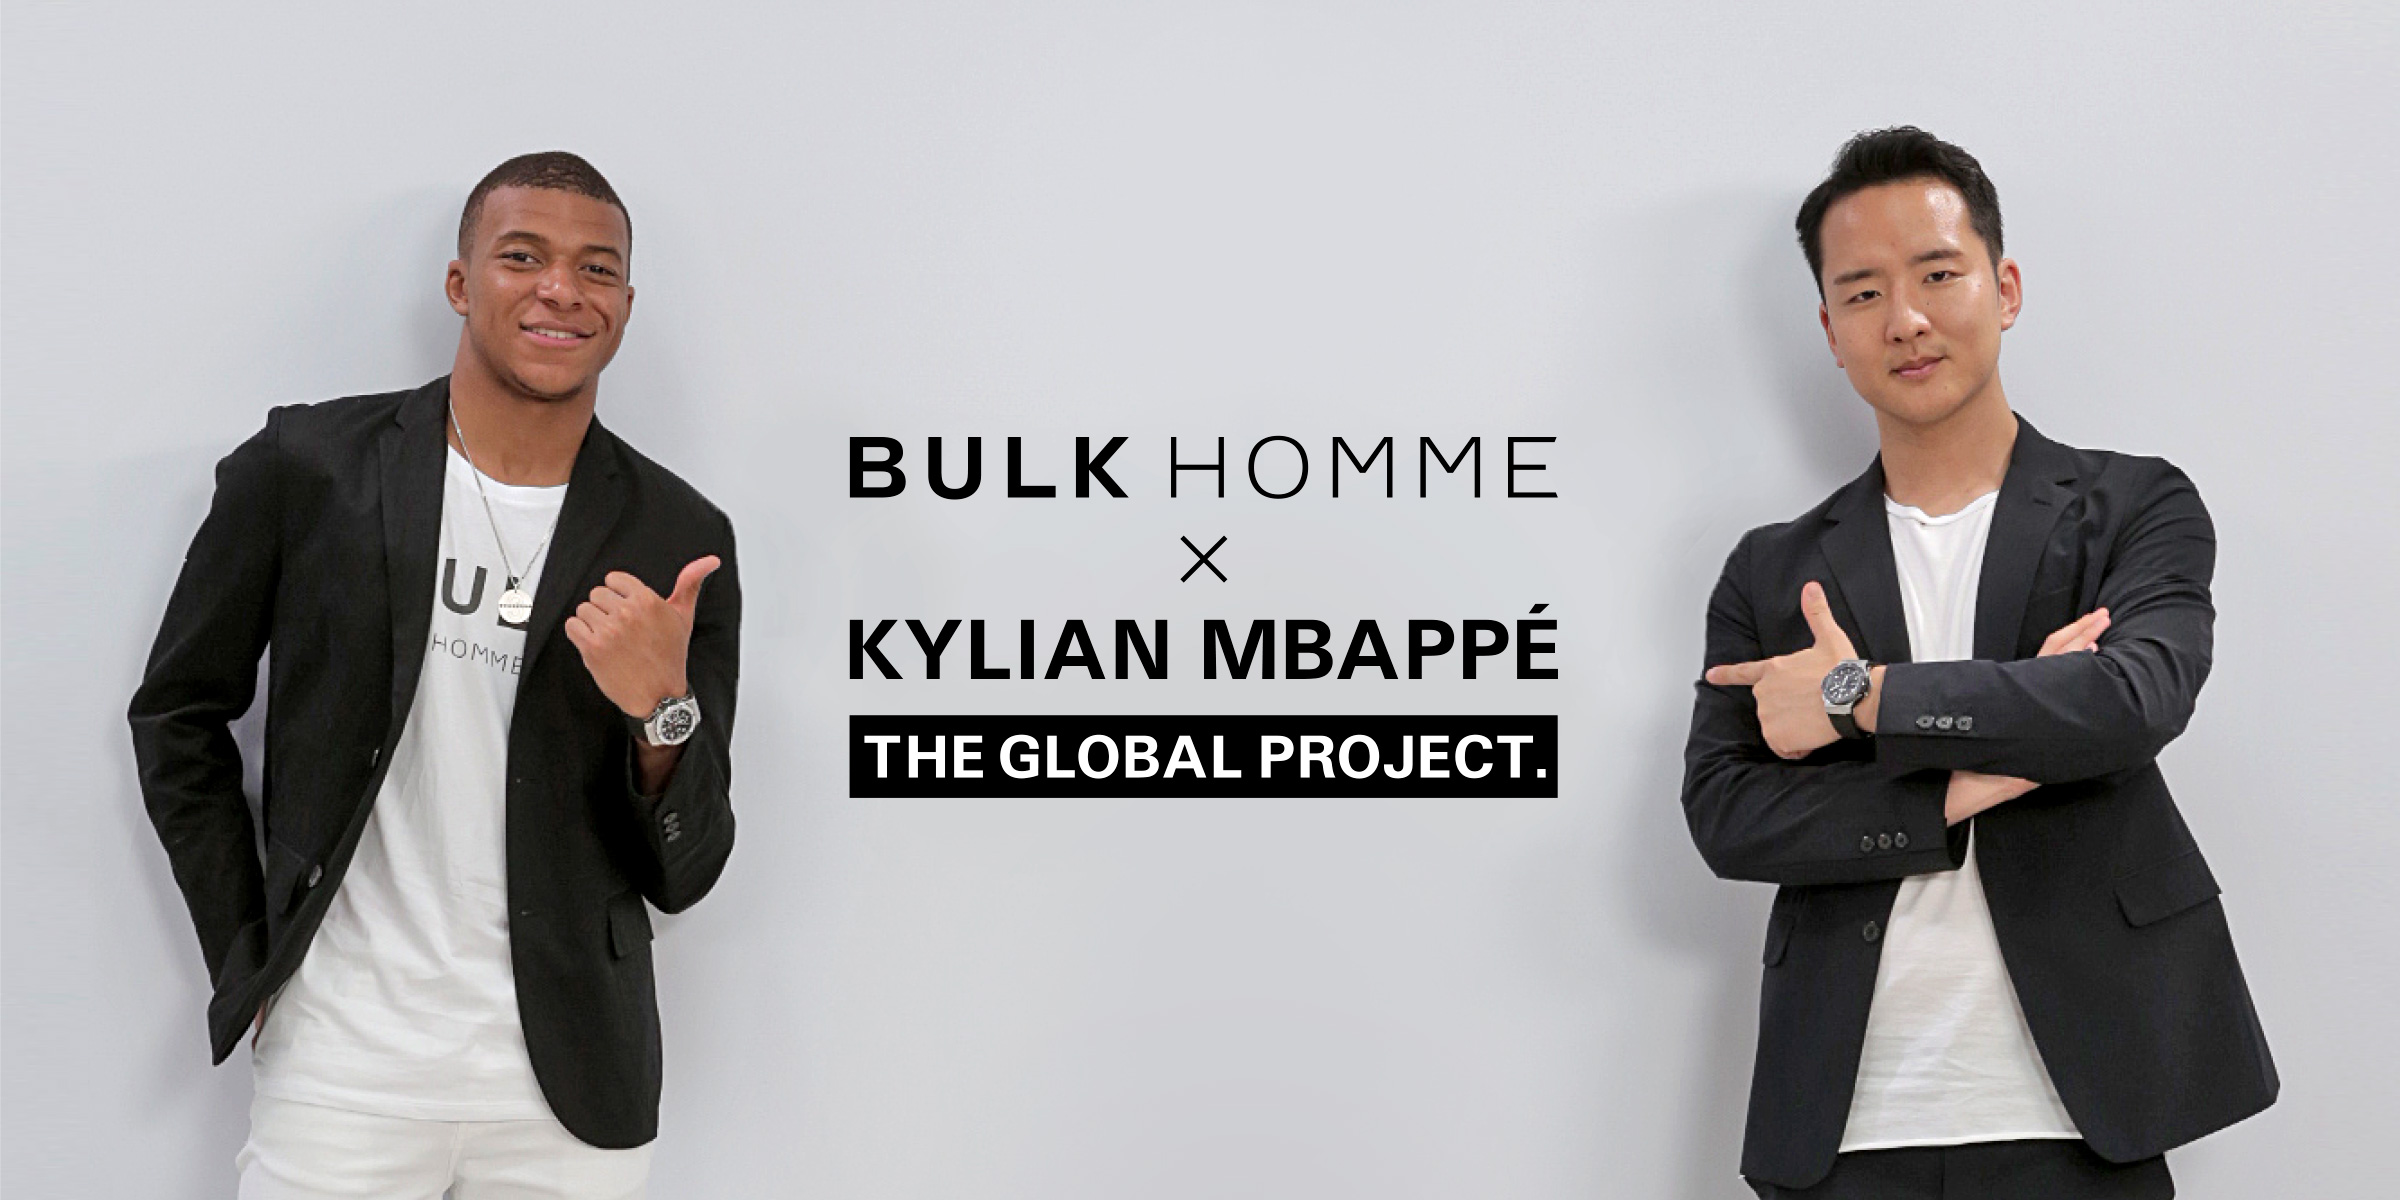 BULK HOMME×KYLIAN MBAPPÉ THE GROBAL PROJECT.